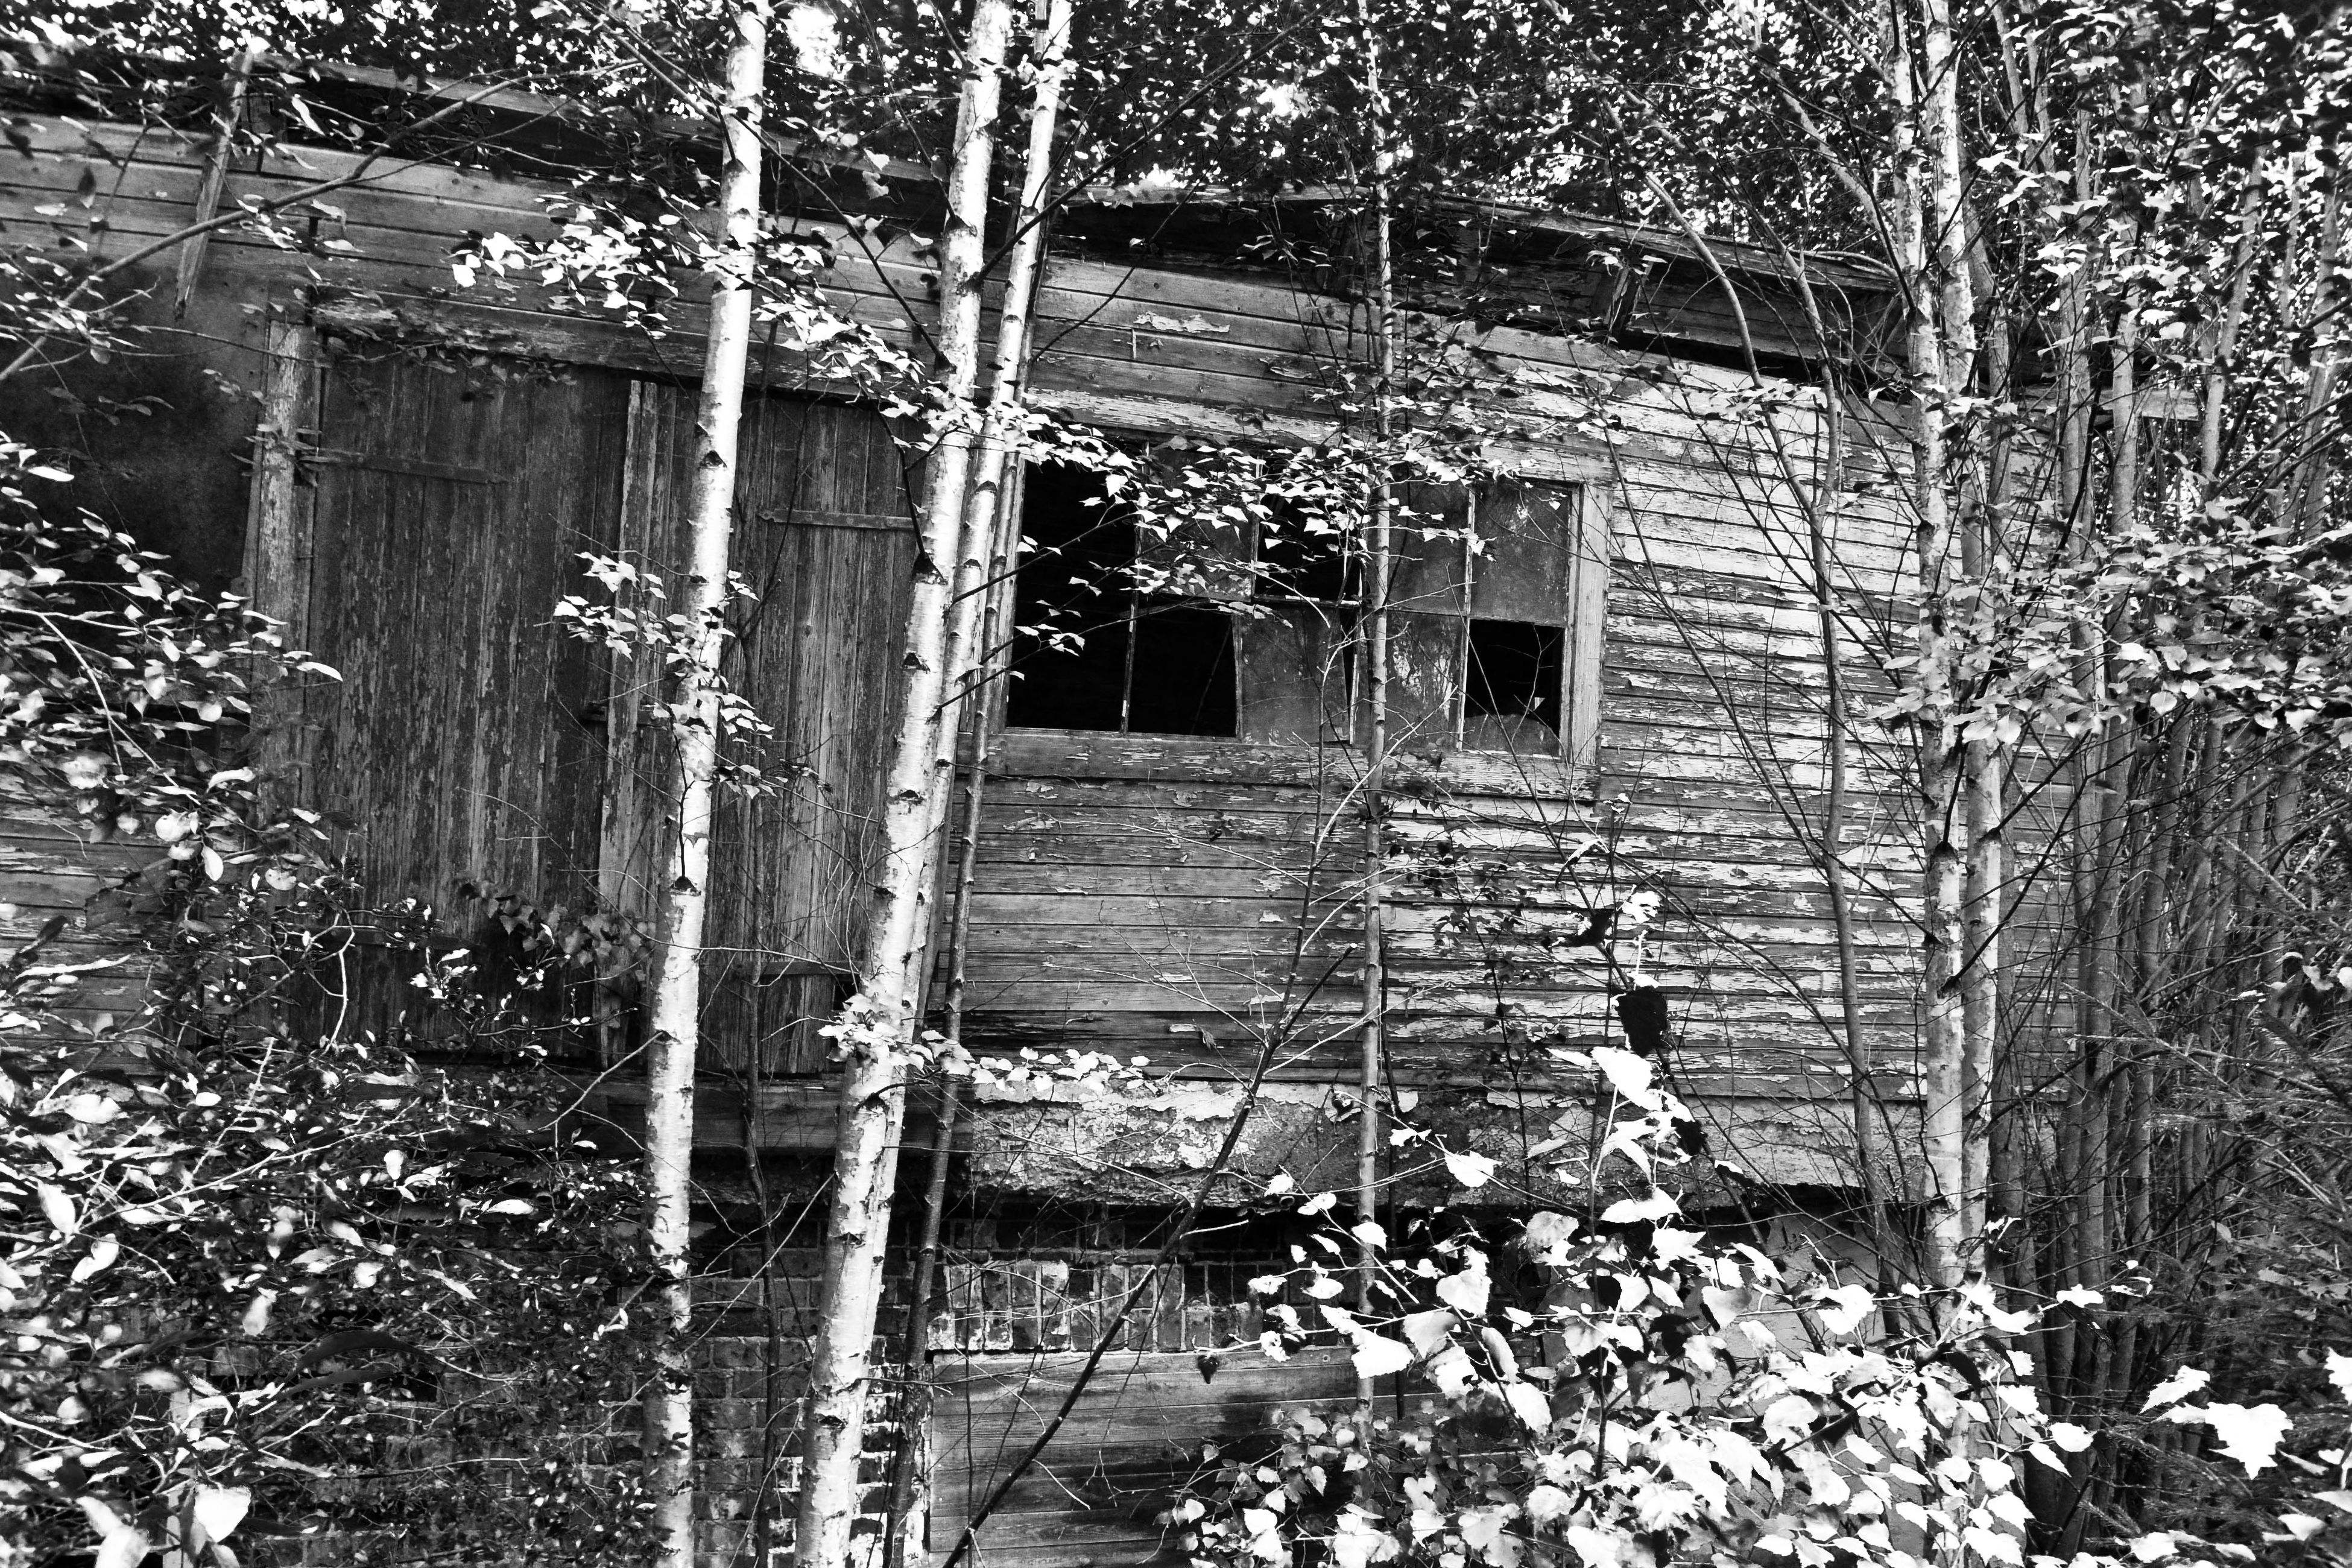 architecture, built structure, building exterior, tree, house, abandoned, old, ivy, damaged, window, obsolete, run-down, wood - material, residential structure, deterioration, growth, brick wall, weathered, building, residential building